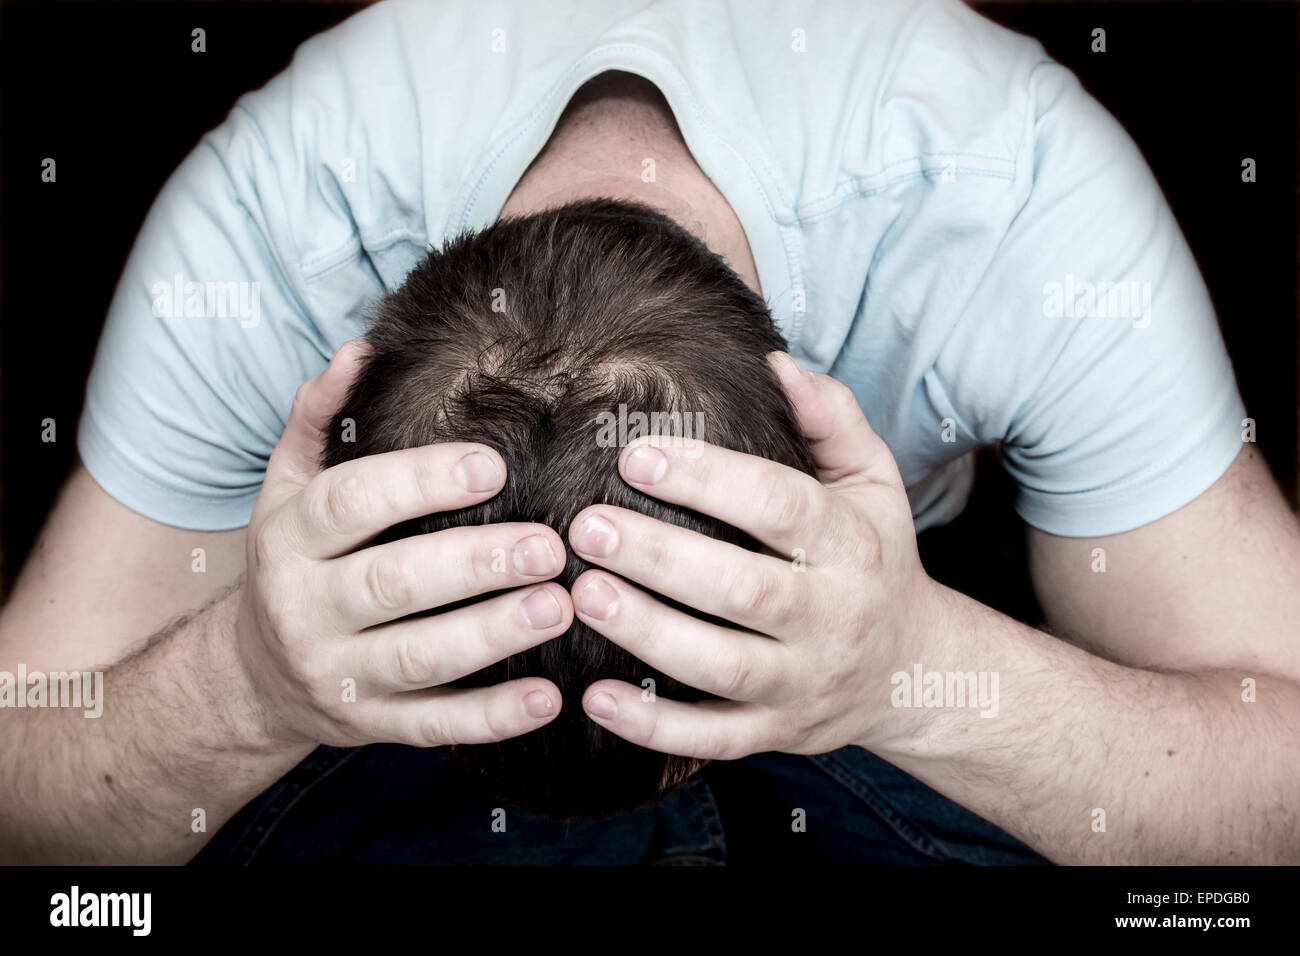 Depressed crying scared man holding his head in his hands sitting on floor over black background. Despair, depression, - Stock Image